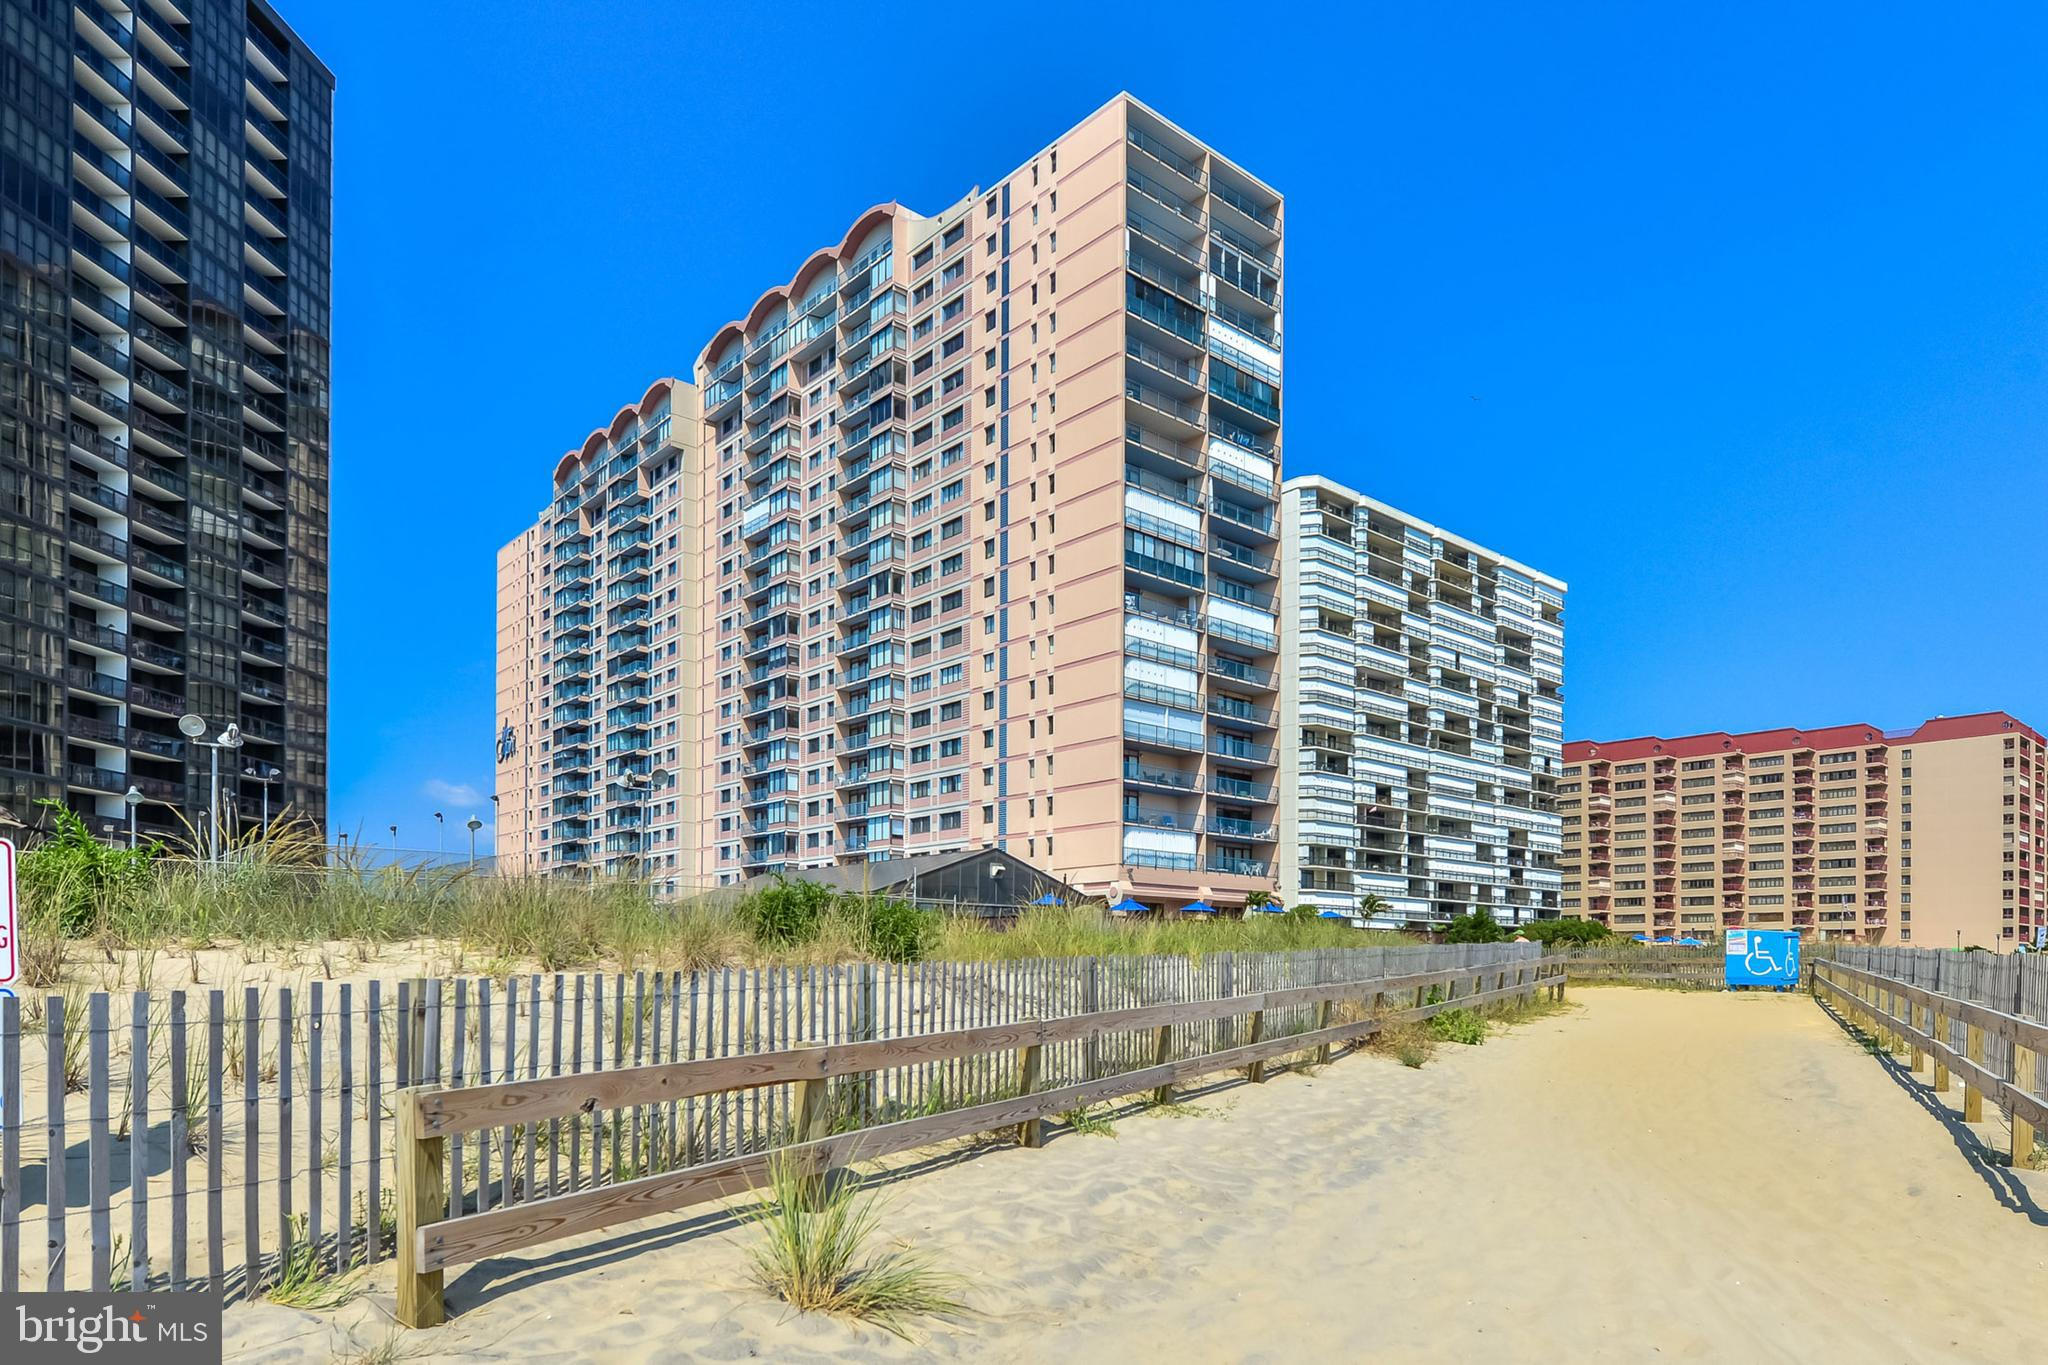 This 3 bed, 2 bath unit, has one of Ocean City's largest balconies featuring amazing bay views and sunsets.   With over 1400 sq/ft there is room for everyone.  Nicely updated with tile throughout the living areas and carpeted bedrooms.  The kitchen features white cabinets, stove, microwave, washer/dryer, and granite countertops.   Both bathrooms have been redone including tile, tub, shower, toilets and vanities with granite counter tops. Beautifully furnished and decorated, including window treatments.  The Capri offers endless amenities including indoor pool for year round use, tennis, sauna, library, fitness, game room, pool tables, indoor basketball court and more. Welcome to the beach.